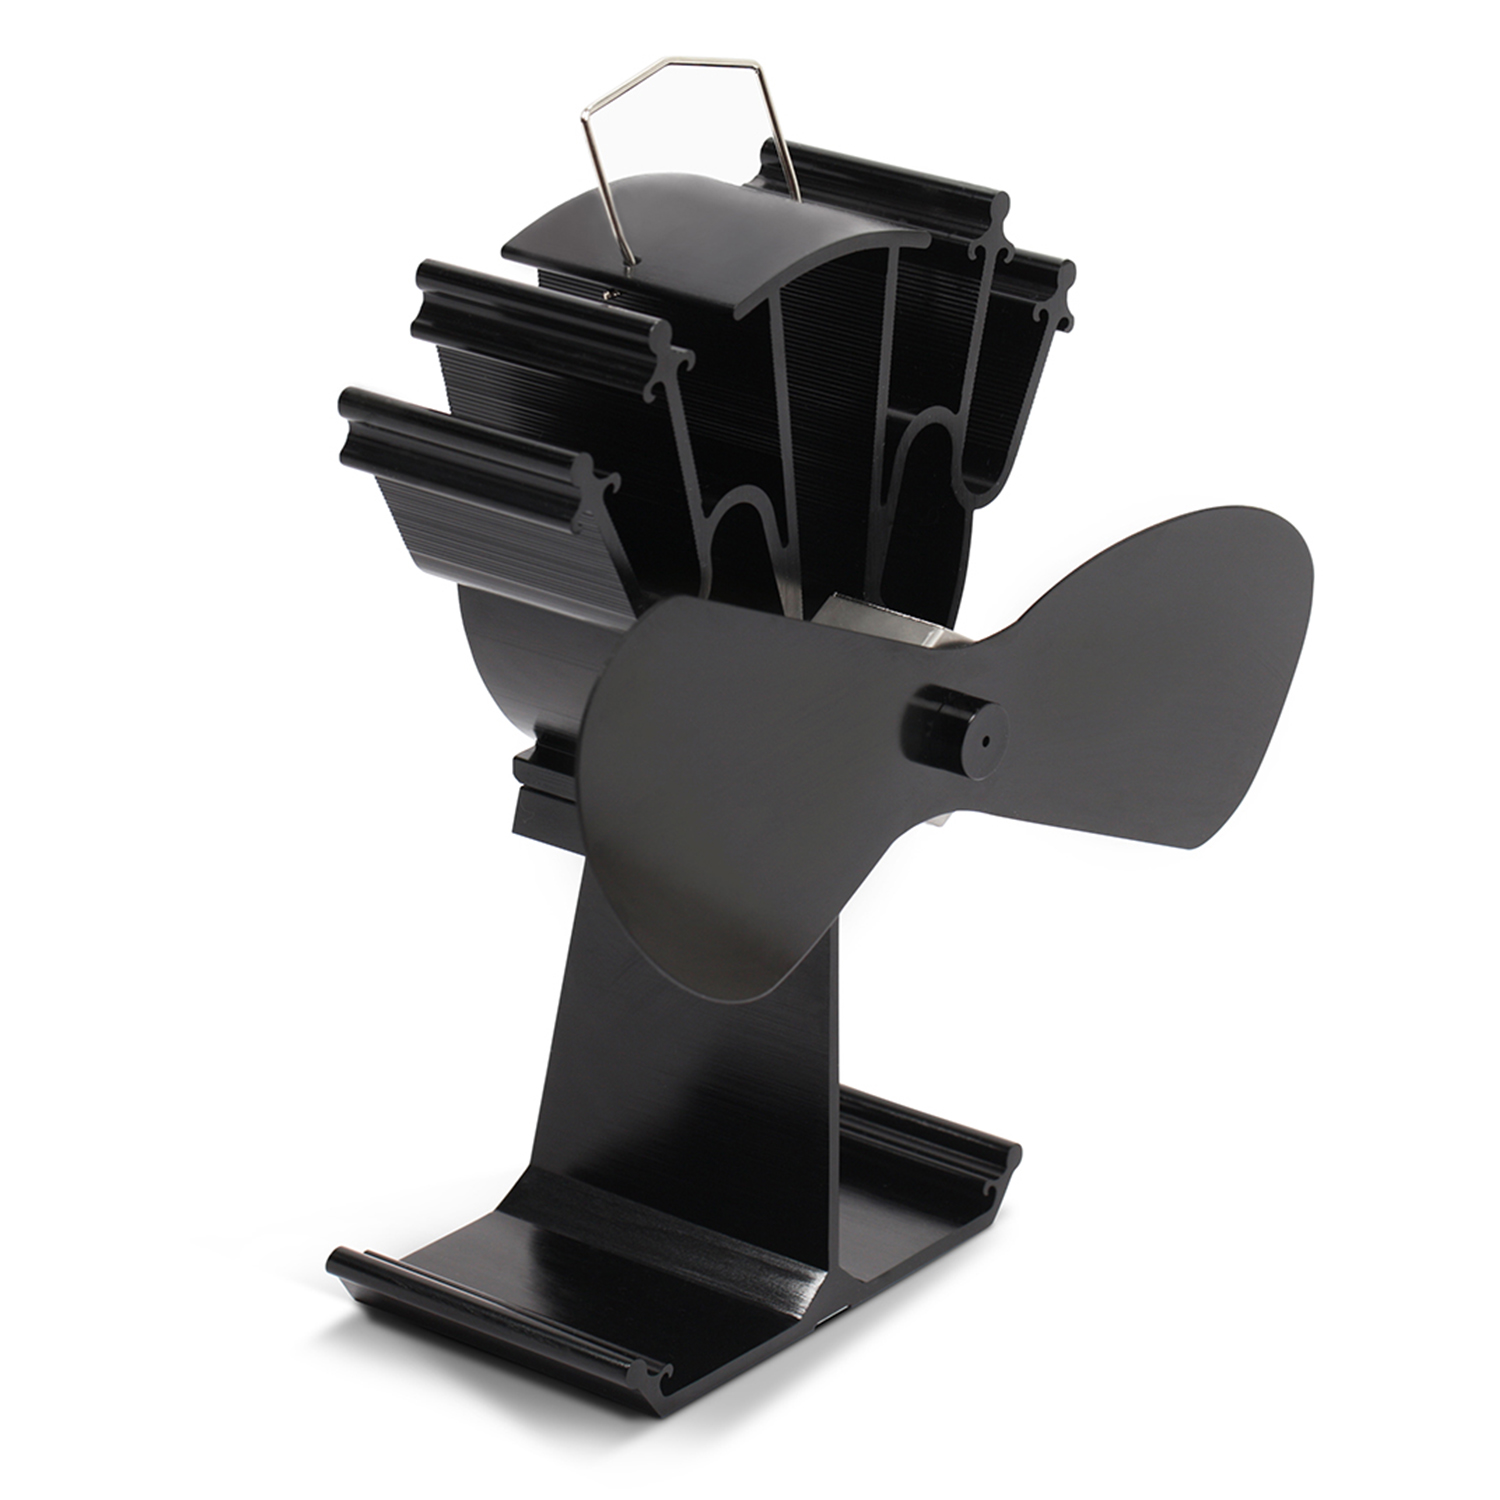 kenley ventilateur fan cologique pour po le bois gaz charbon 2 4 h lice ebay. Black Bedroom Furniture Sets. Home Design Ideas